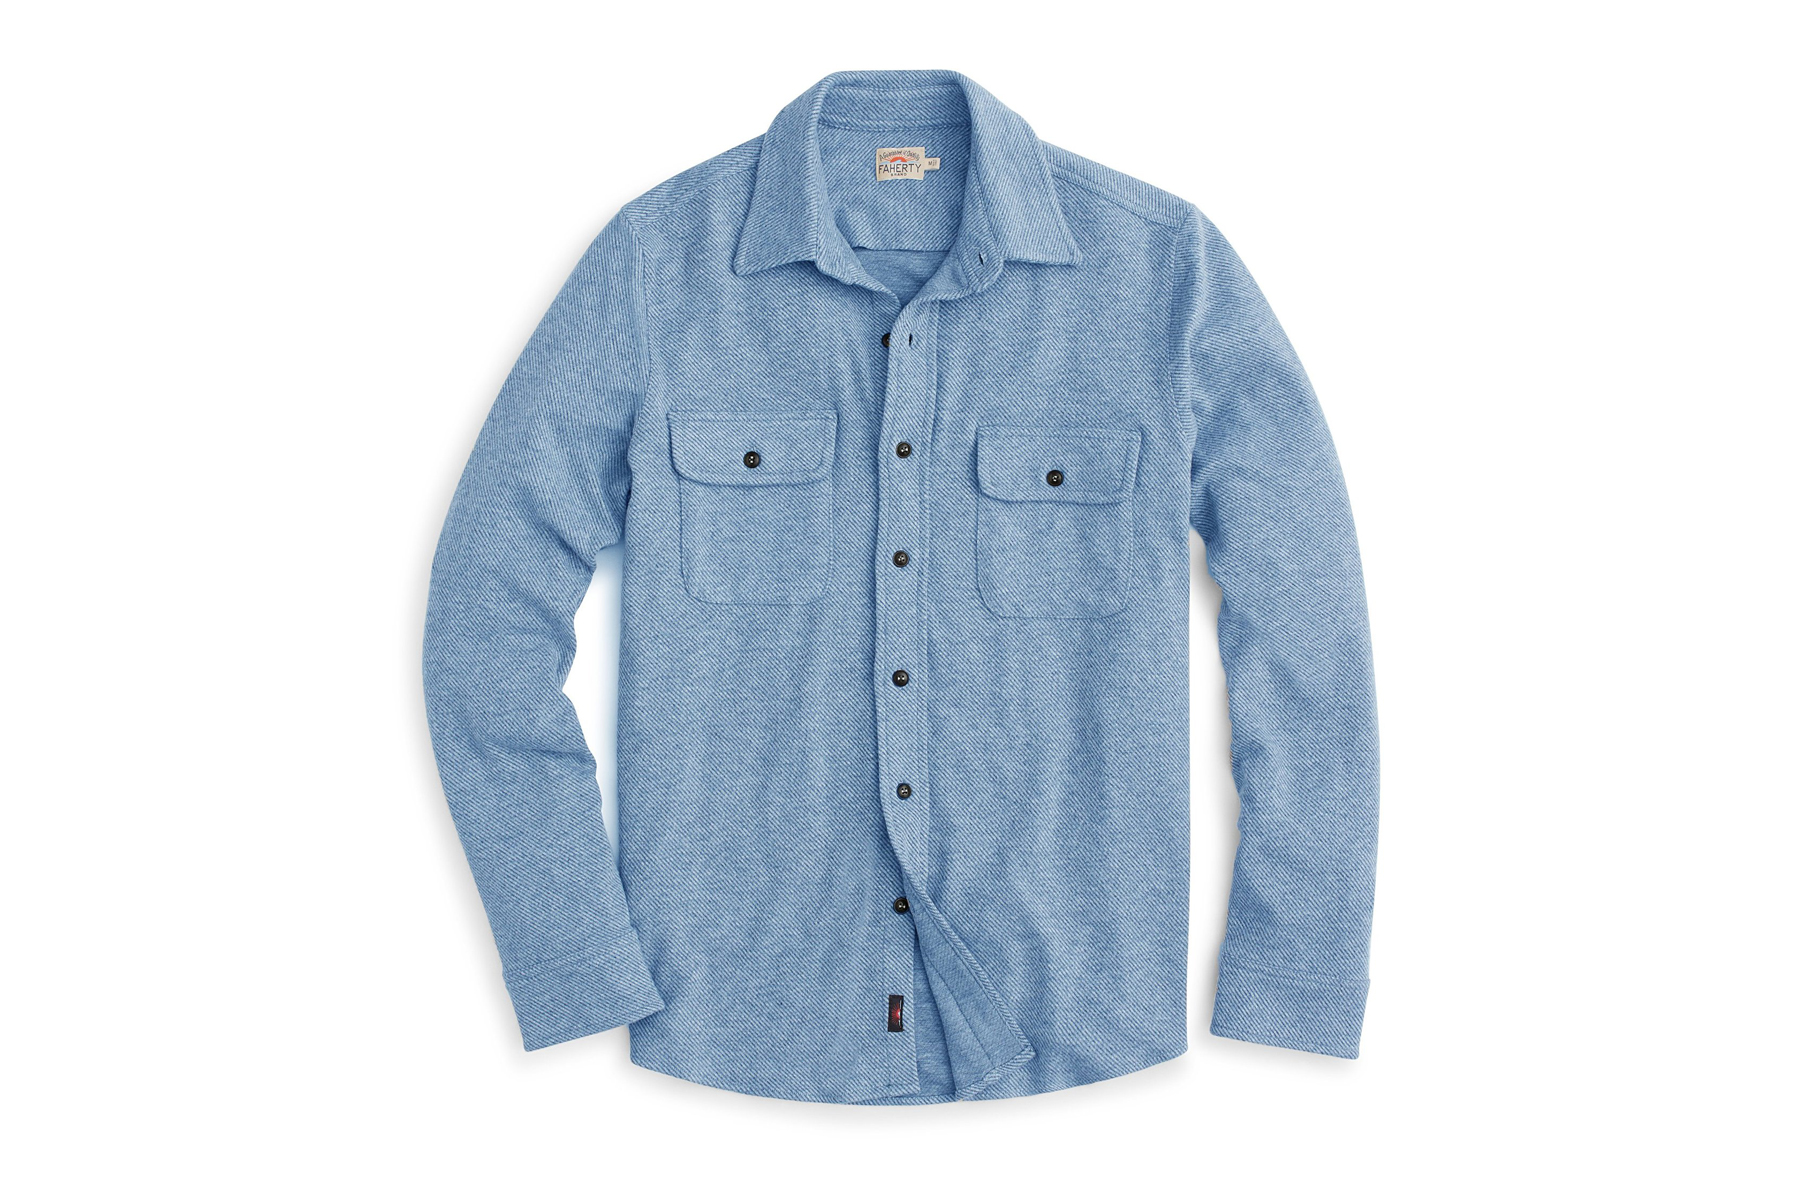 A blue sweater button down shirt